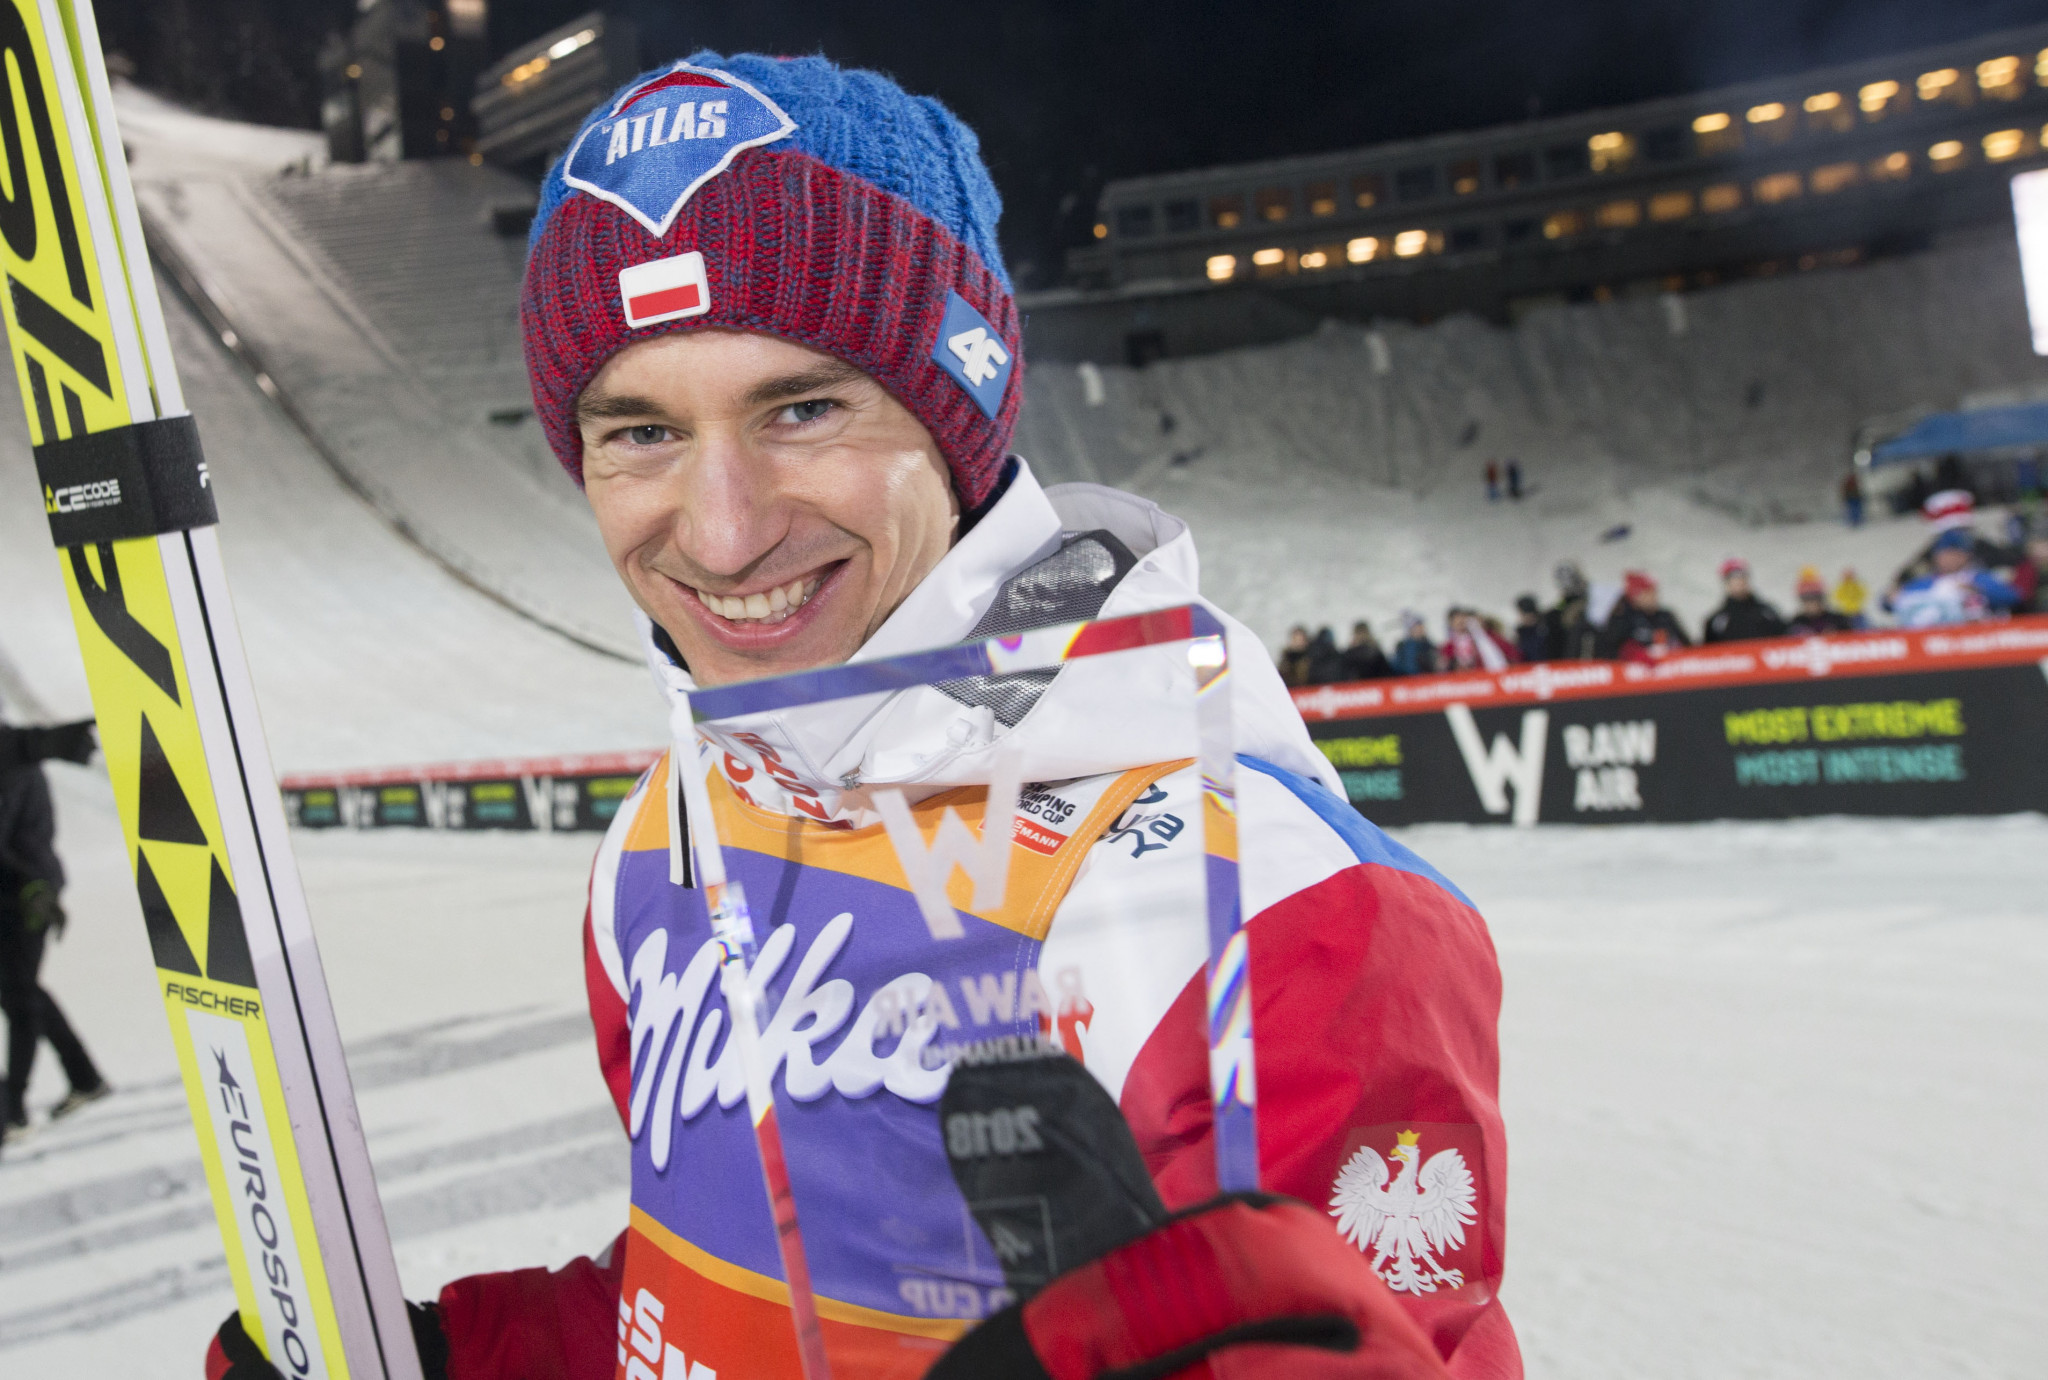 Stoch continues fine Ski Jumping World Cup form with Raw Air win in Trondheim